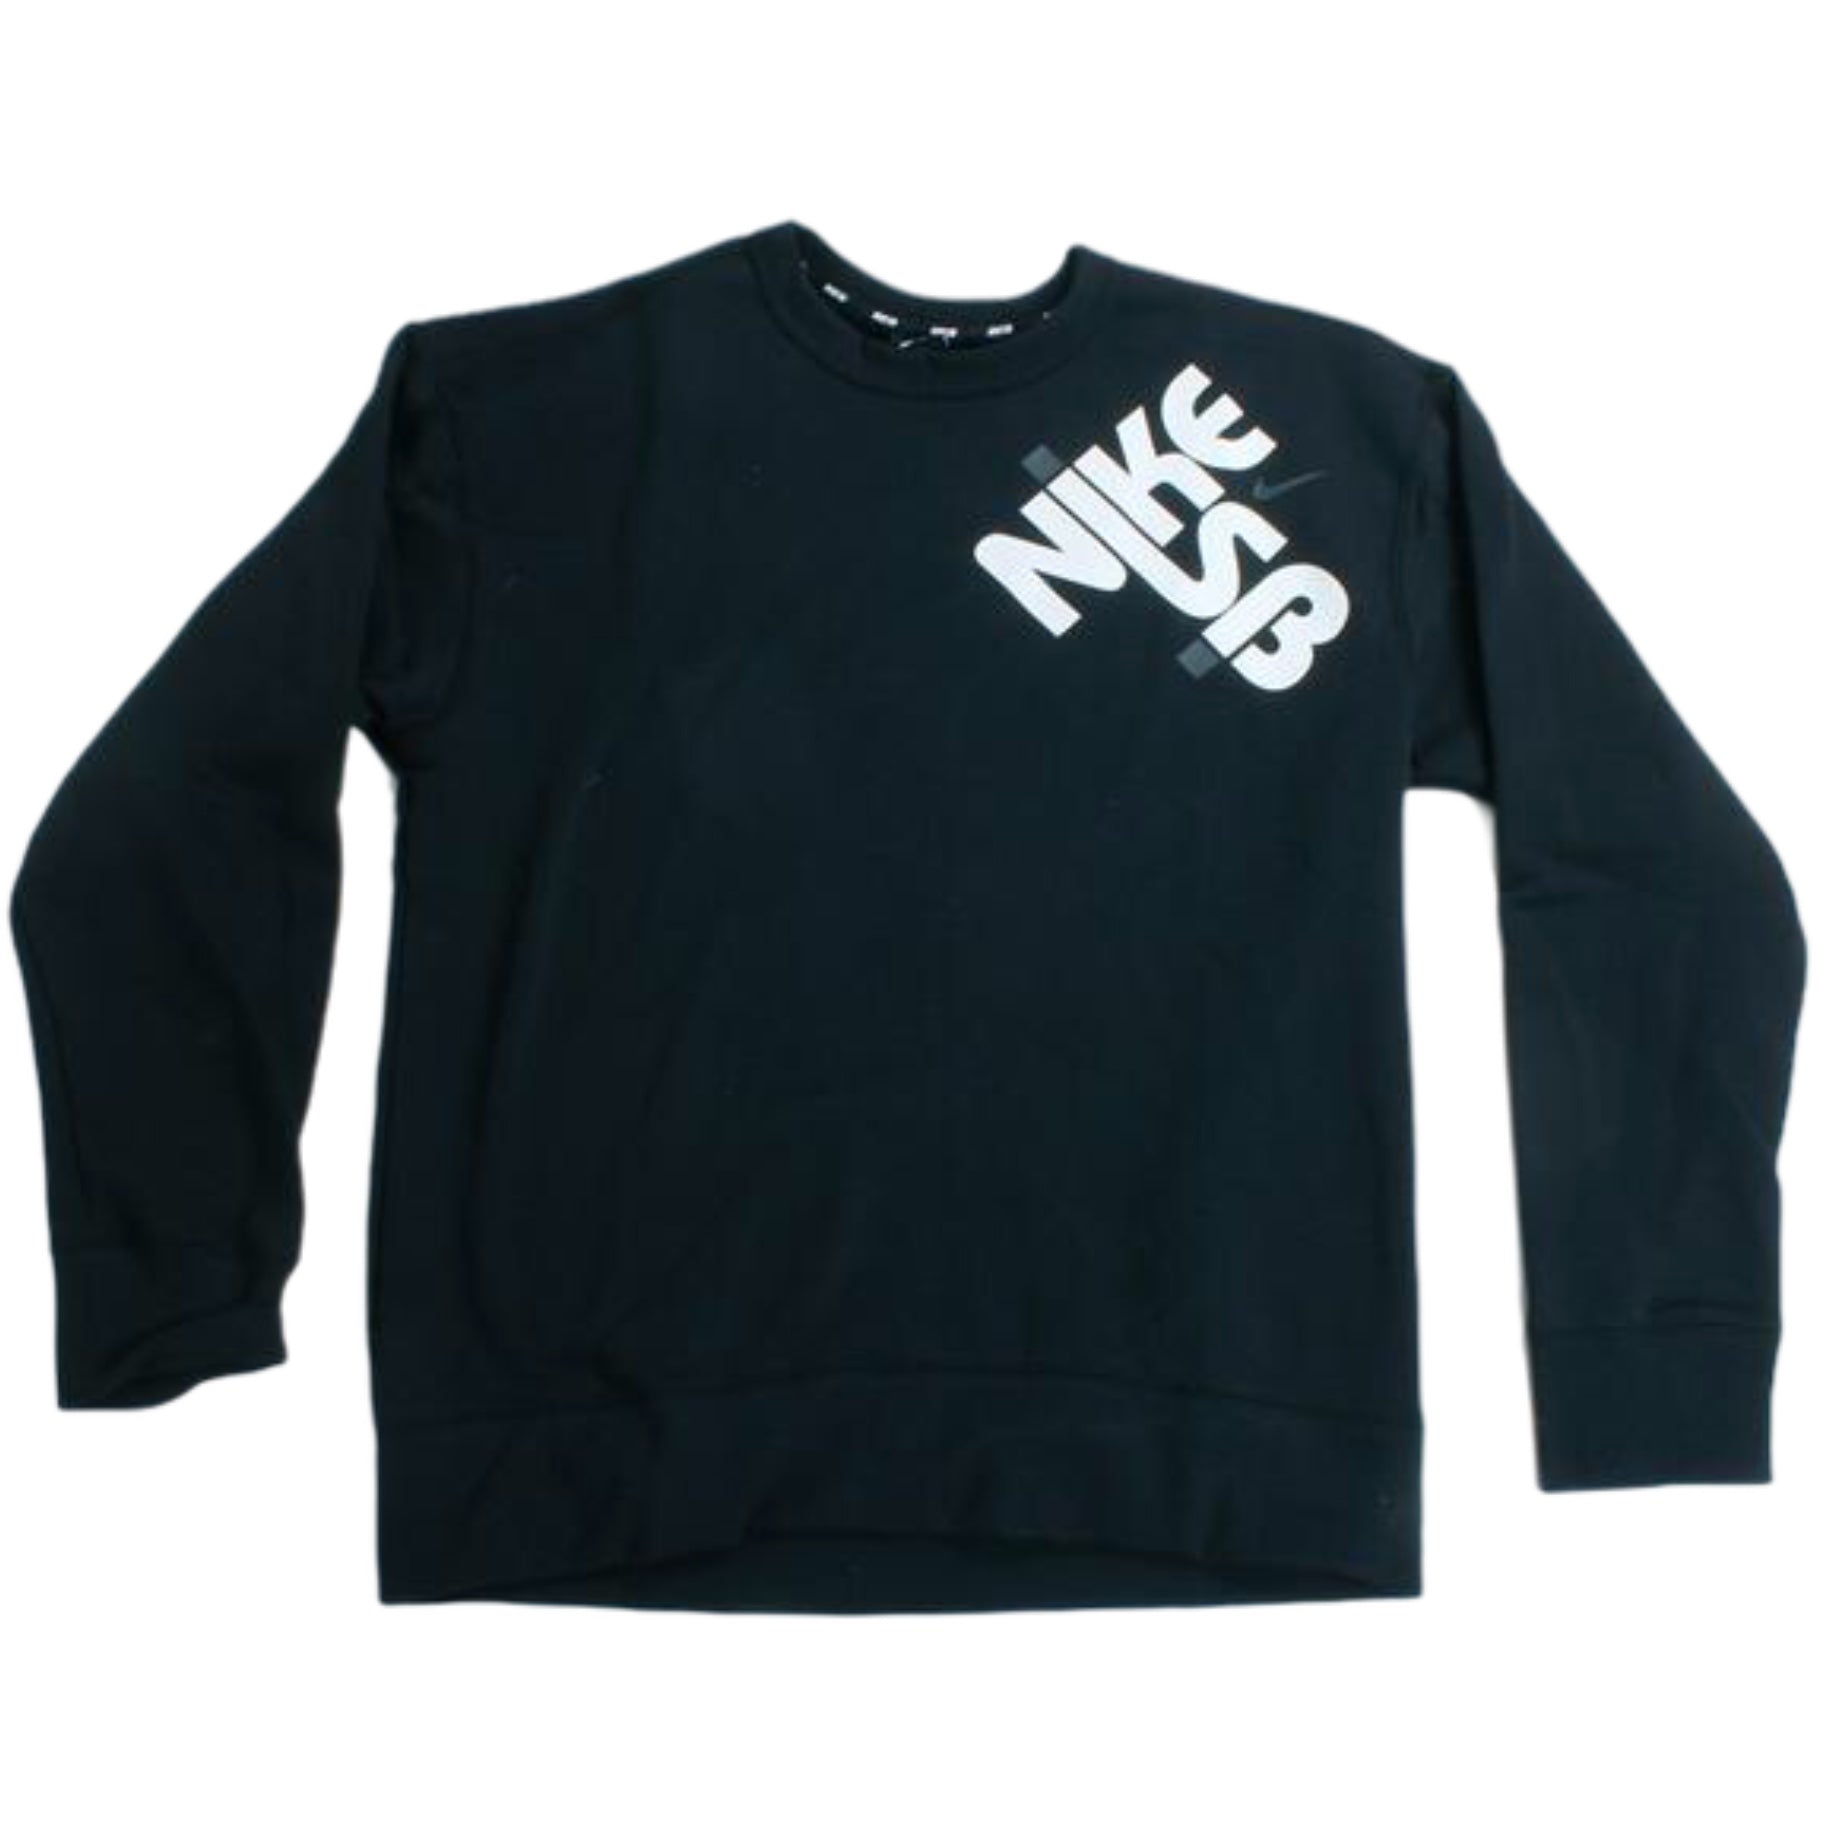 Nike SB Crewneck Sweatshirt SB Icon Drop Black